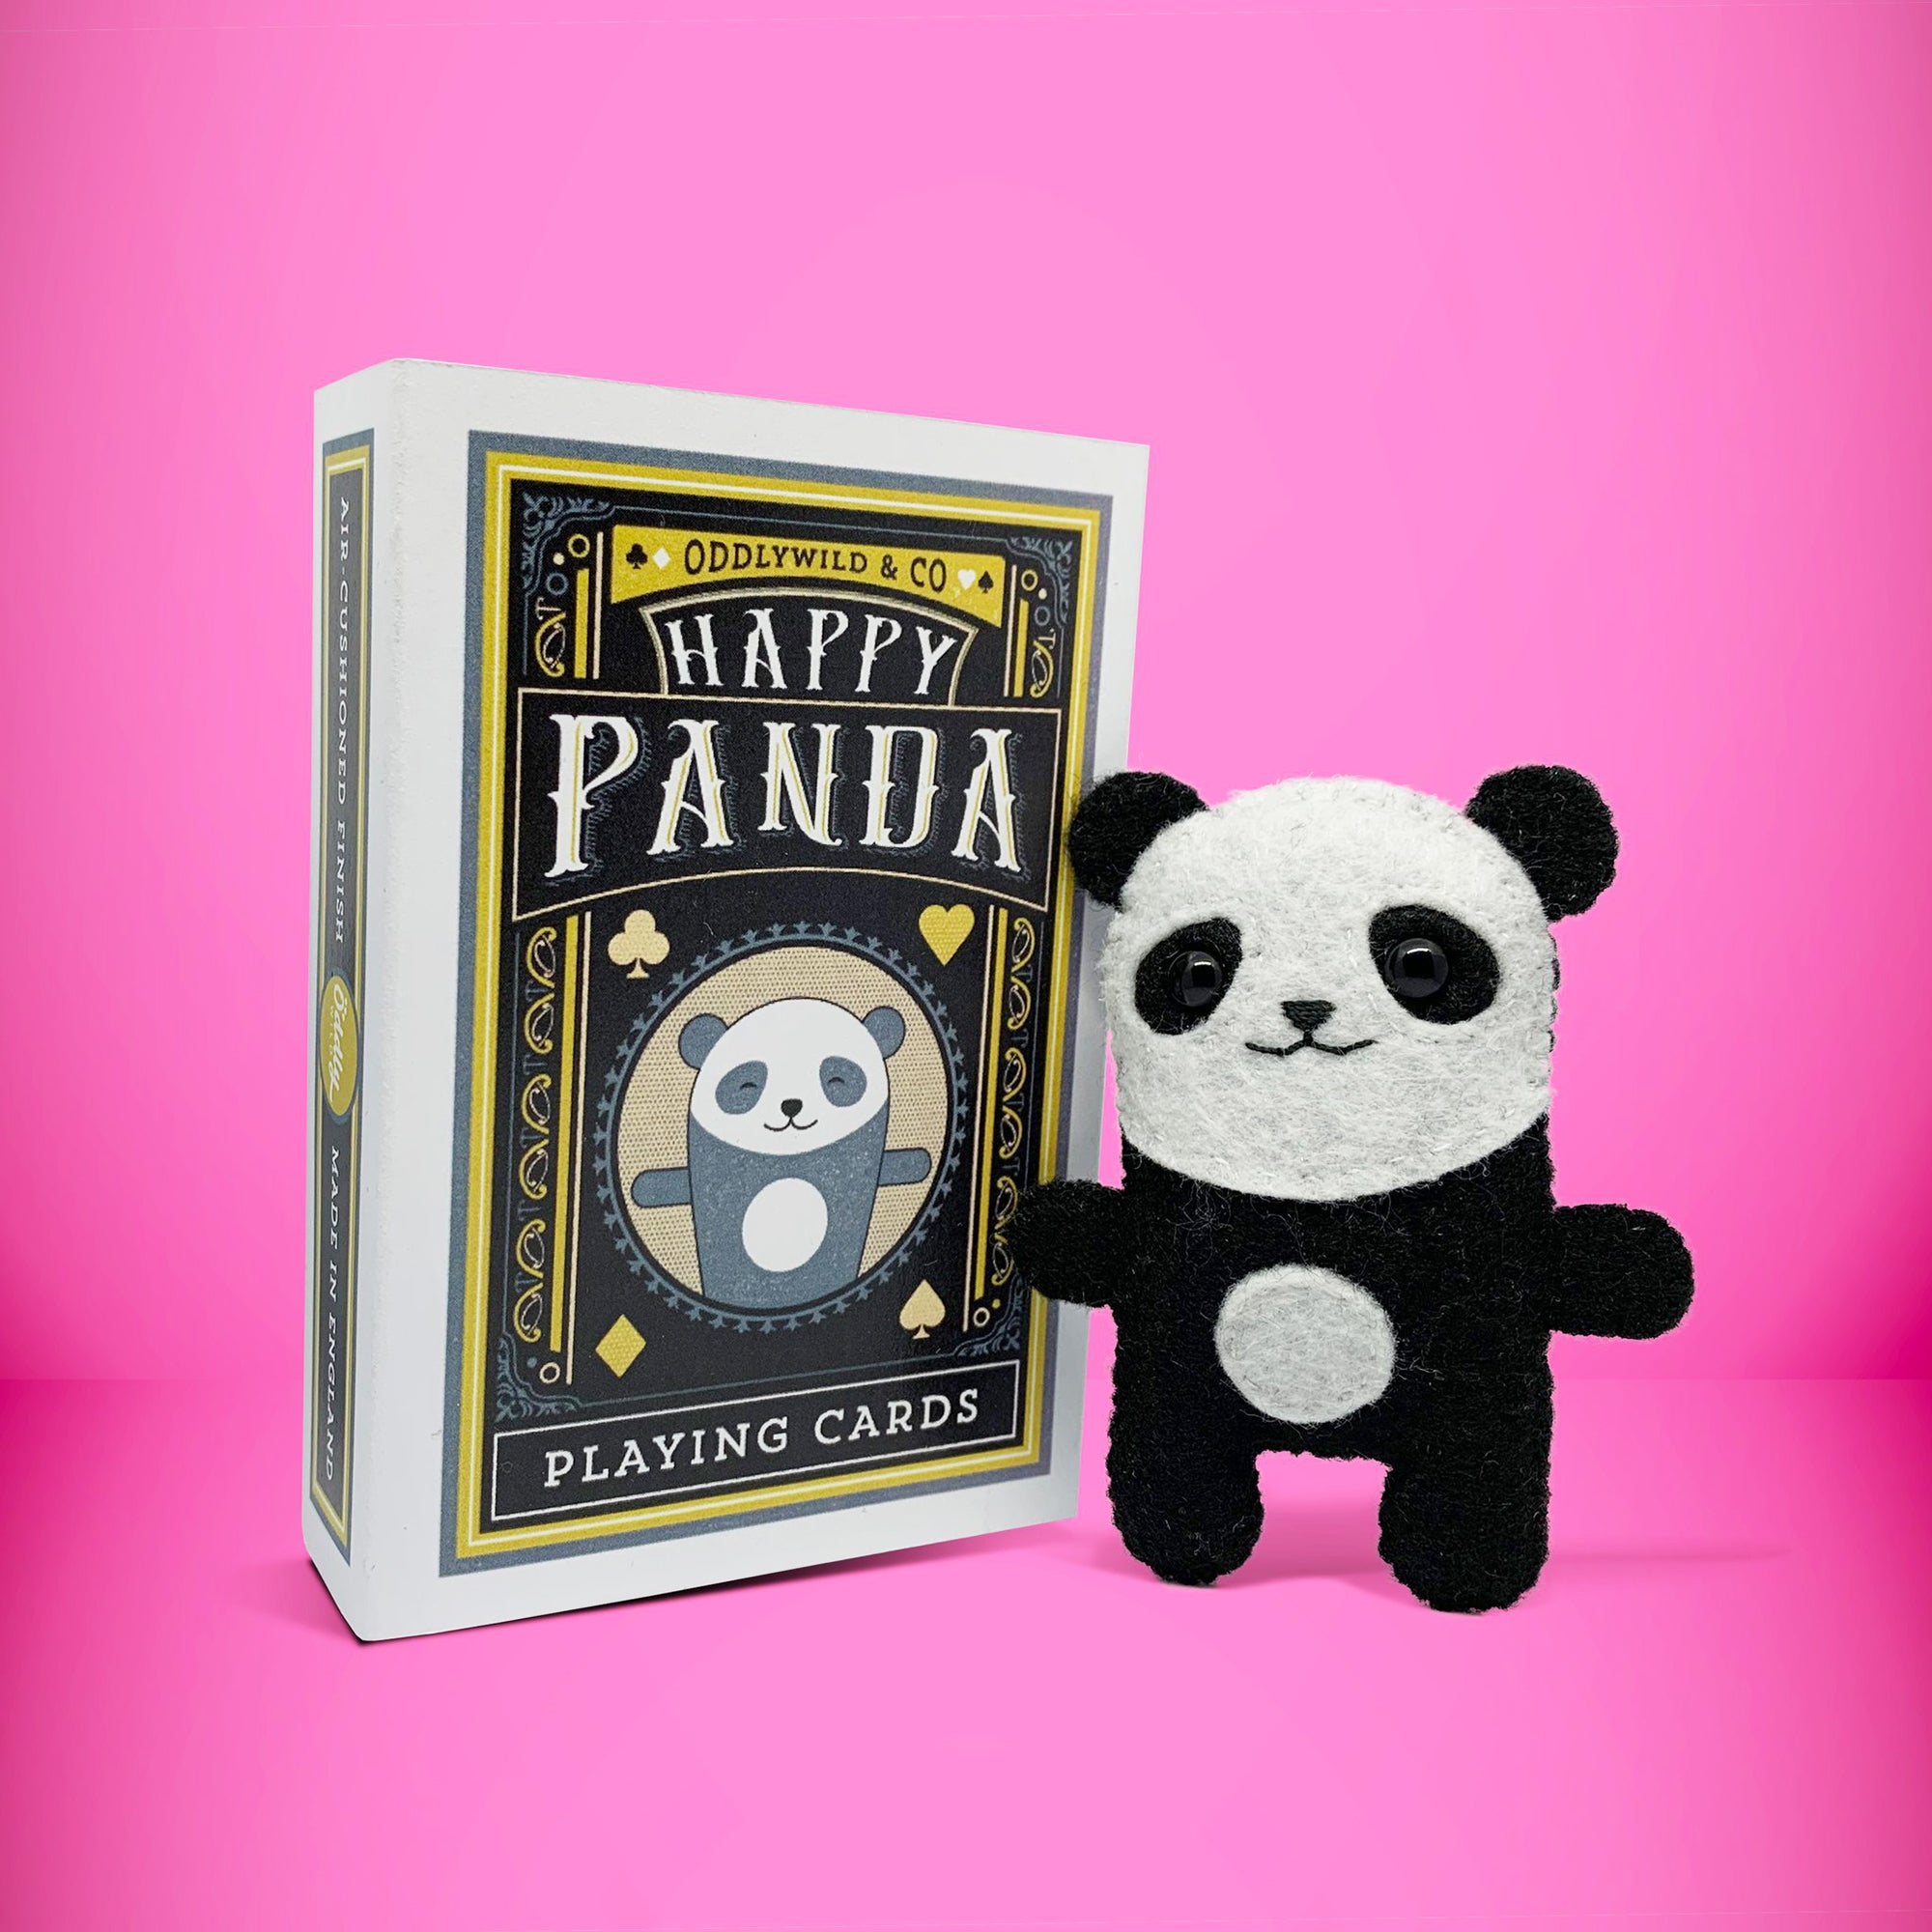 Felt panda in a Matchbox